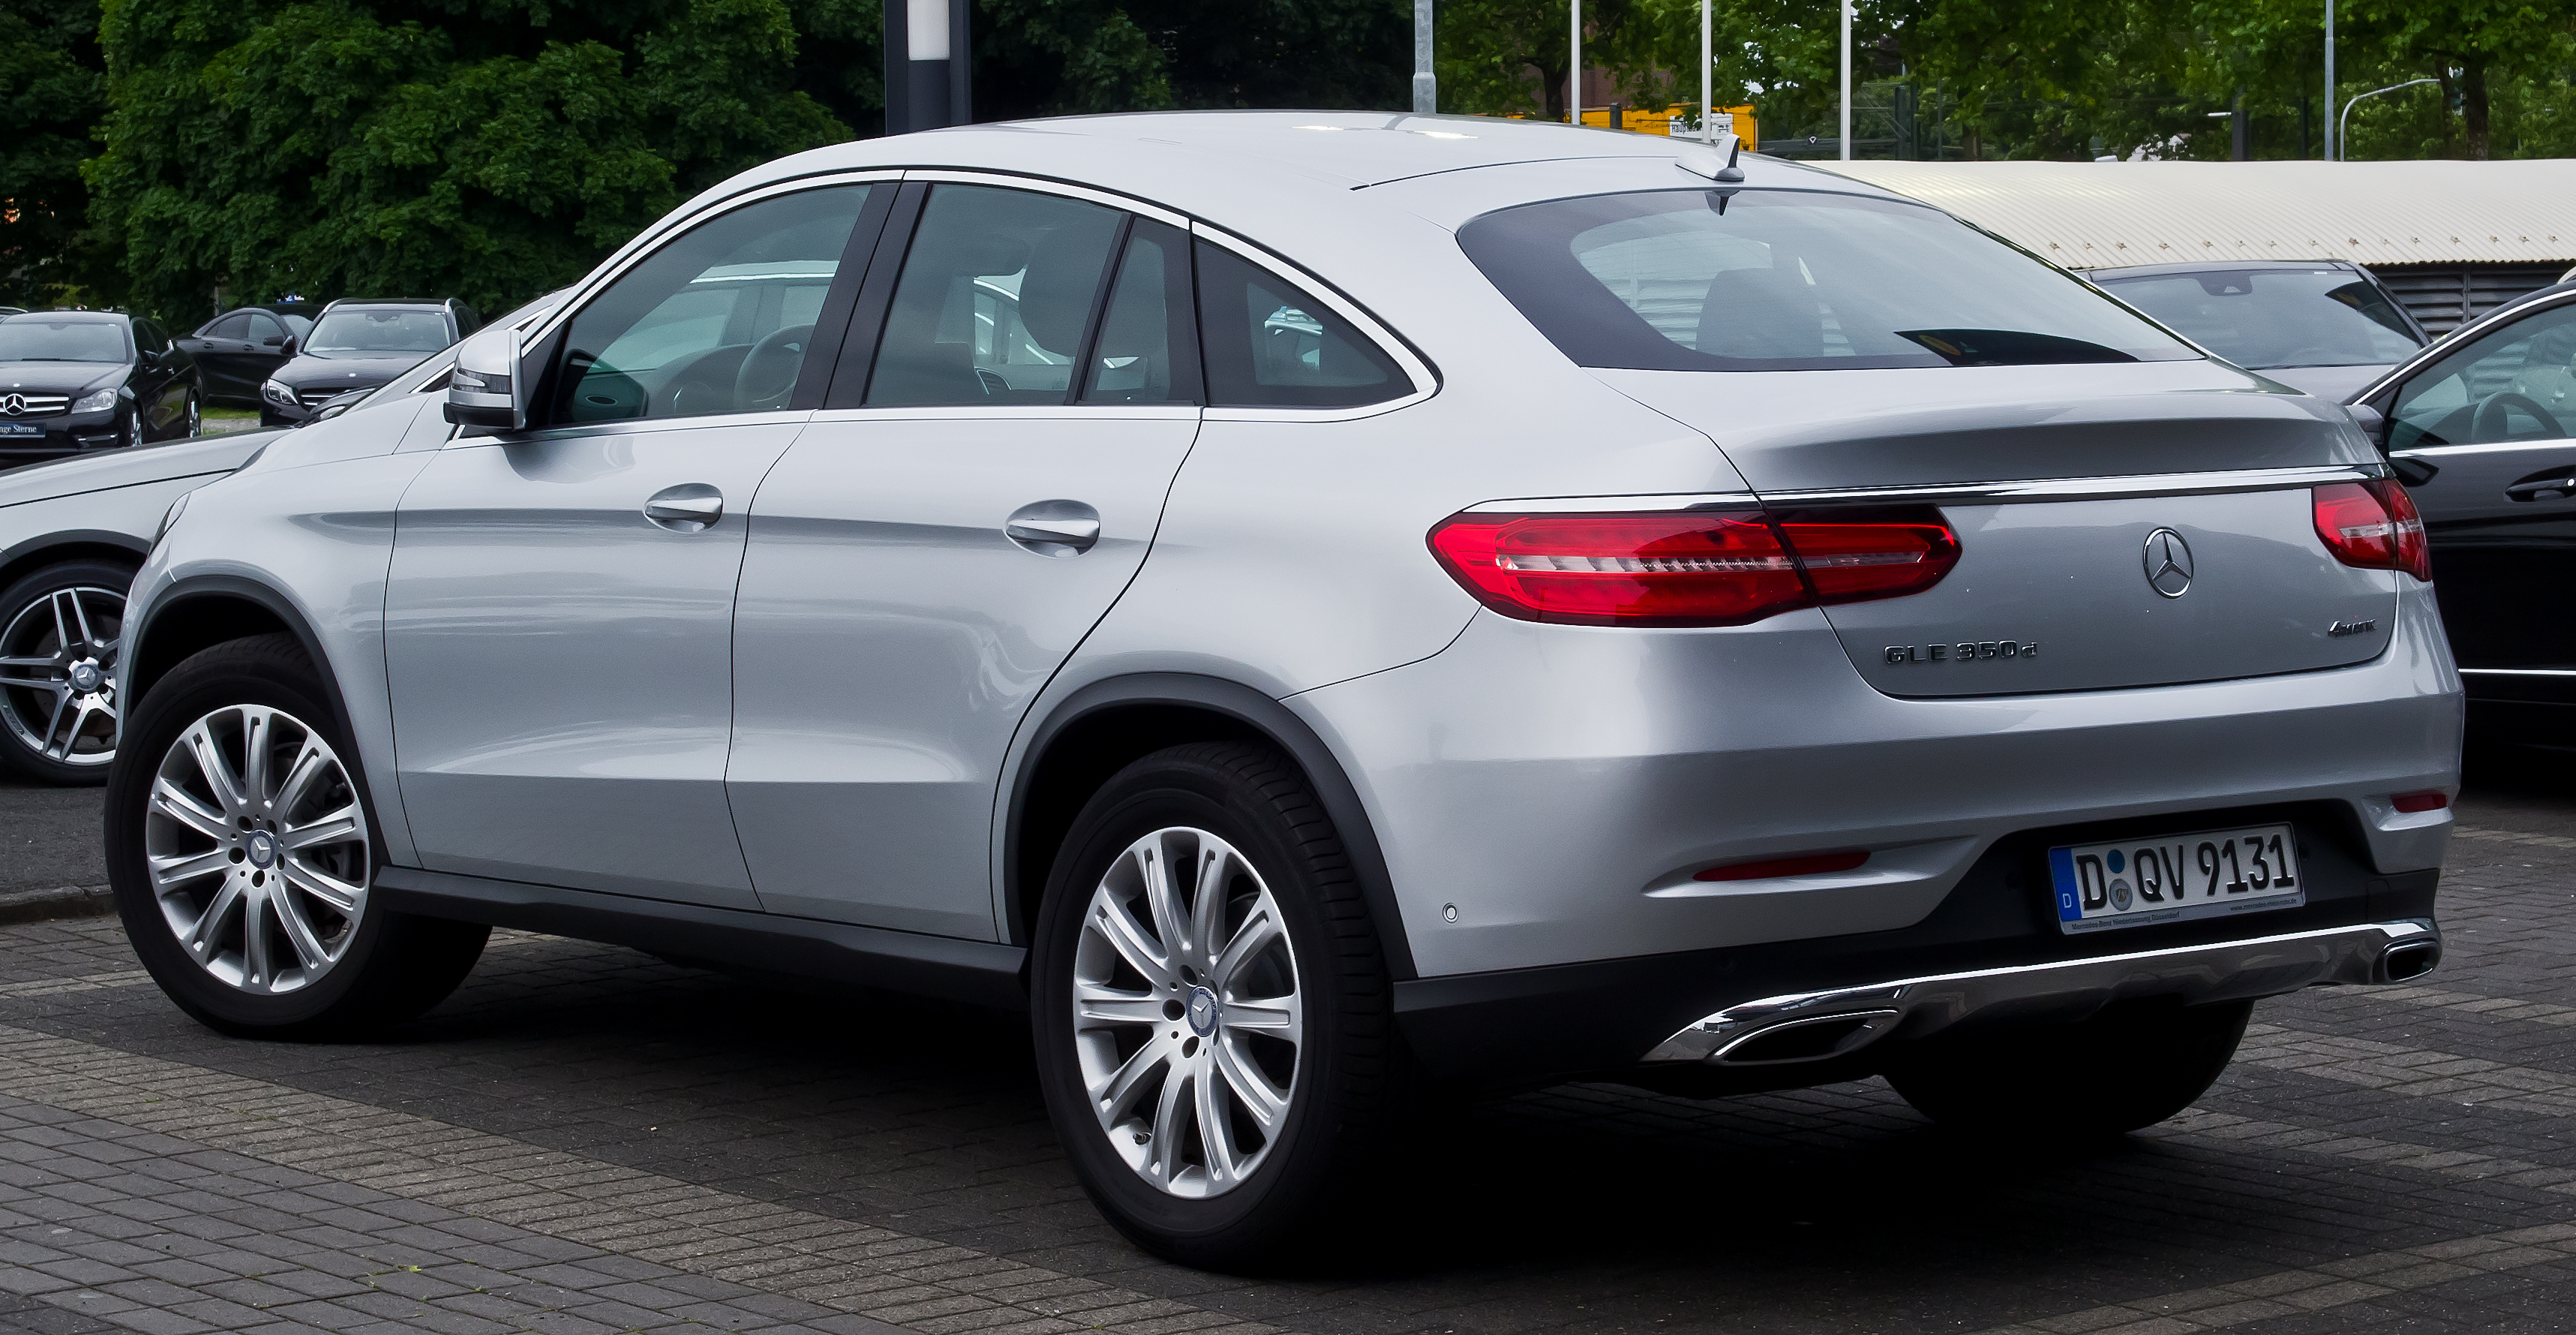 File:Mercedes-Benz GLE 350 d 4MATIC Coupé (C 292) – Heckansicht